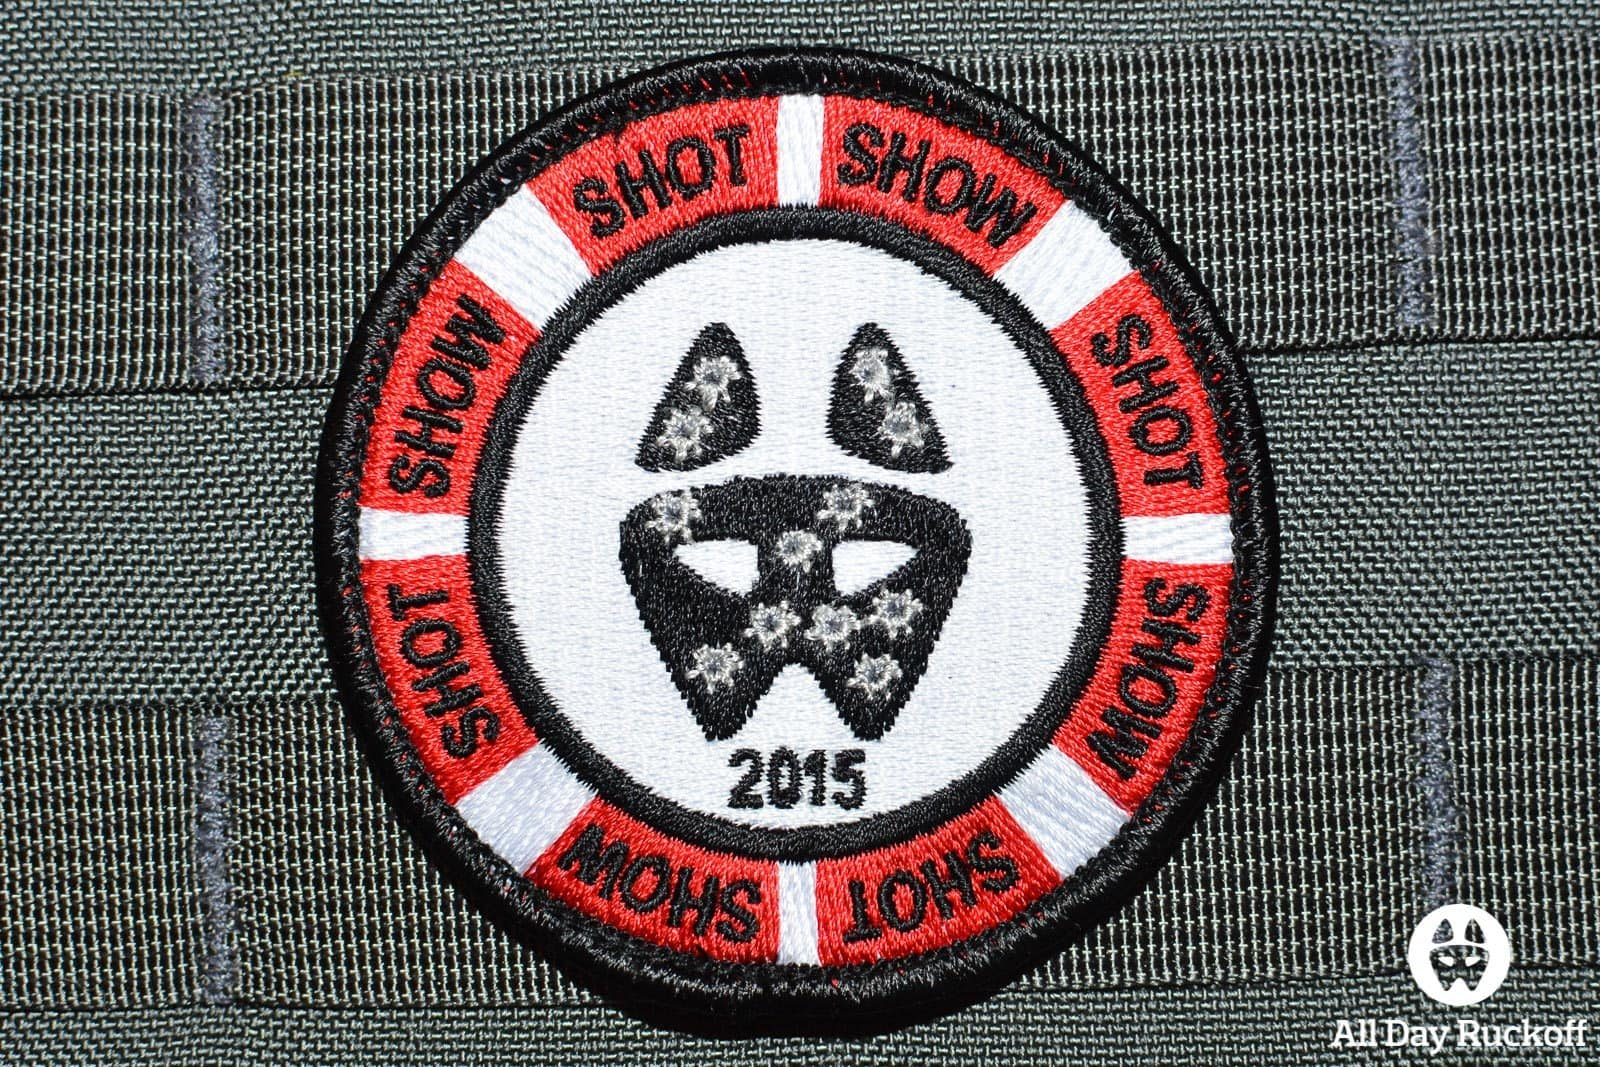 All Day Ruckoff SHOT Show 2015 Patch